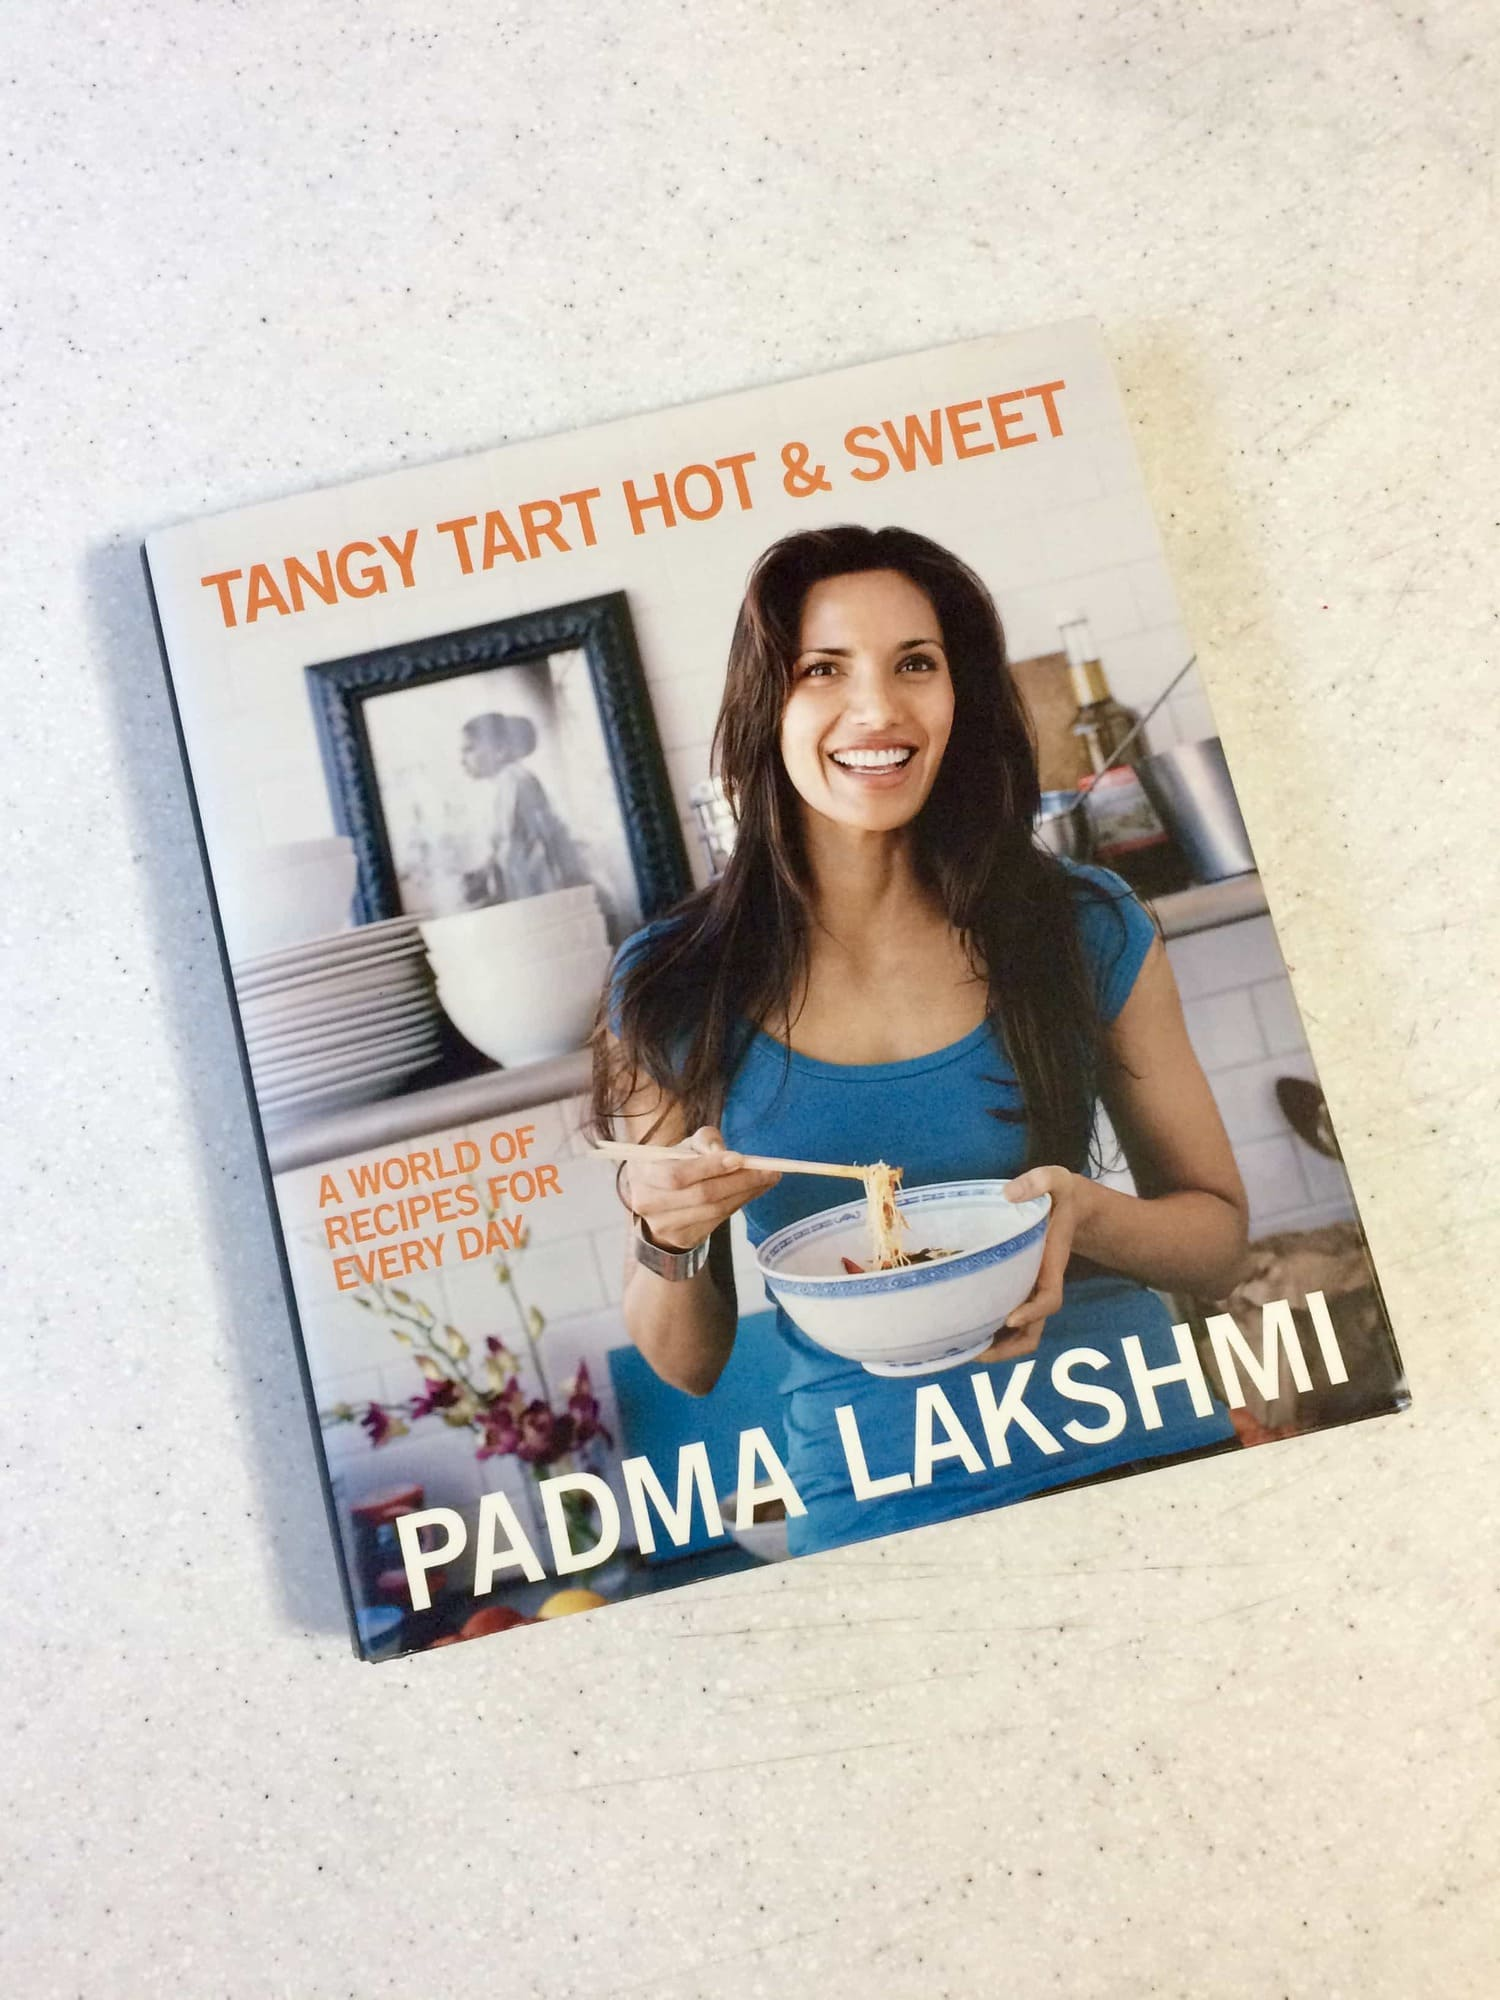 Tangy Tart Hot & Sweet Cookbook by Padma Lakshmi - A world of flavor and easy vegan-friendly recipes